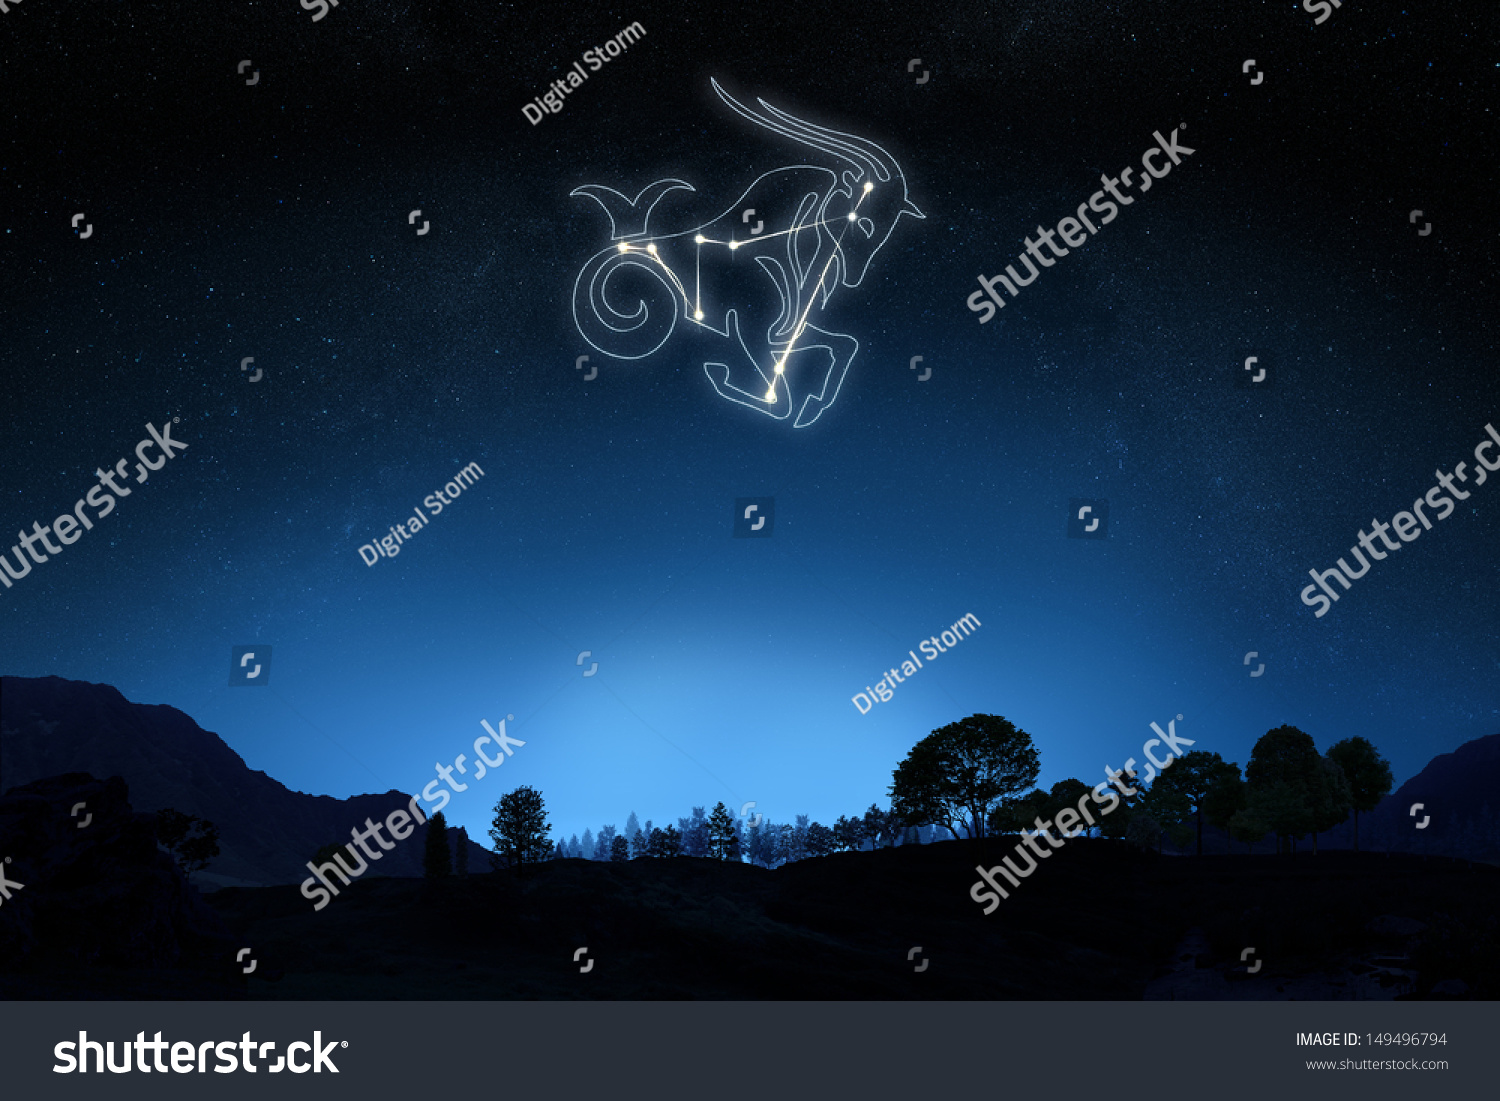 Zodiac Capricorn Star Symbol Outline On Stock Illustration 149496794